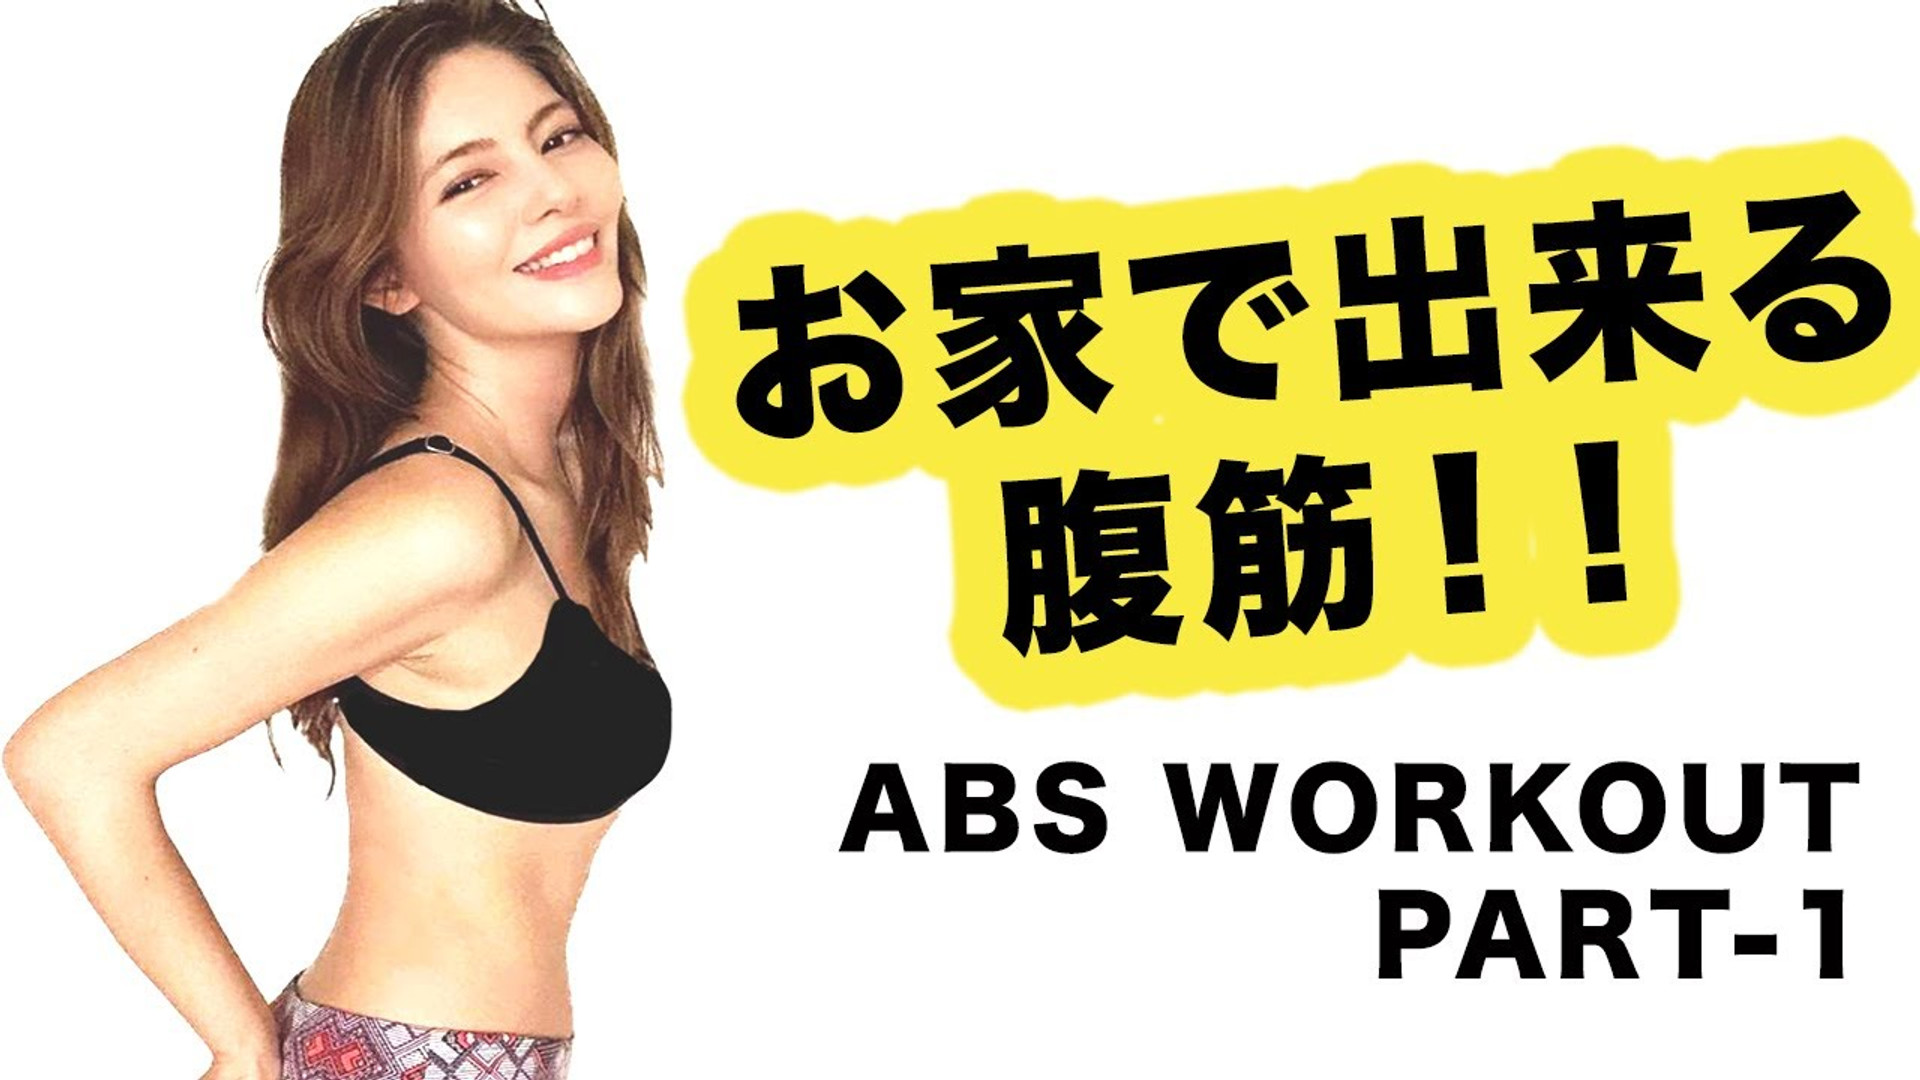 ABS WORKOUT - Youtube